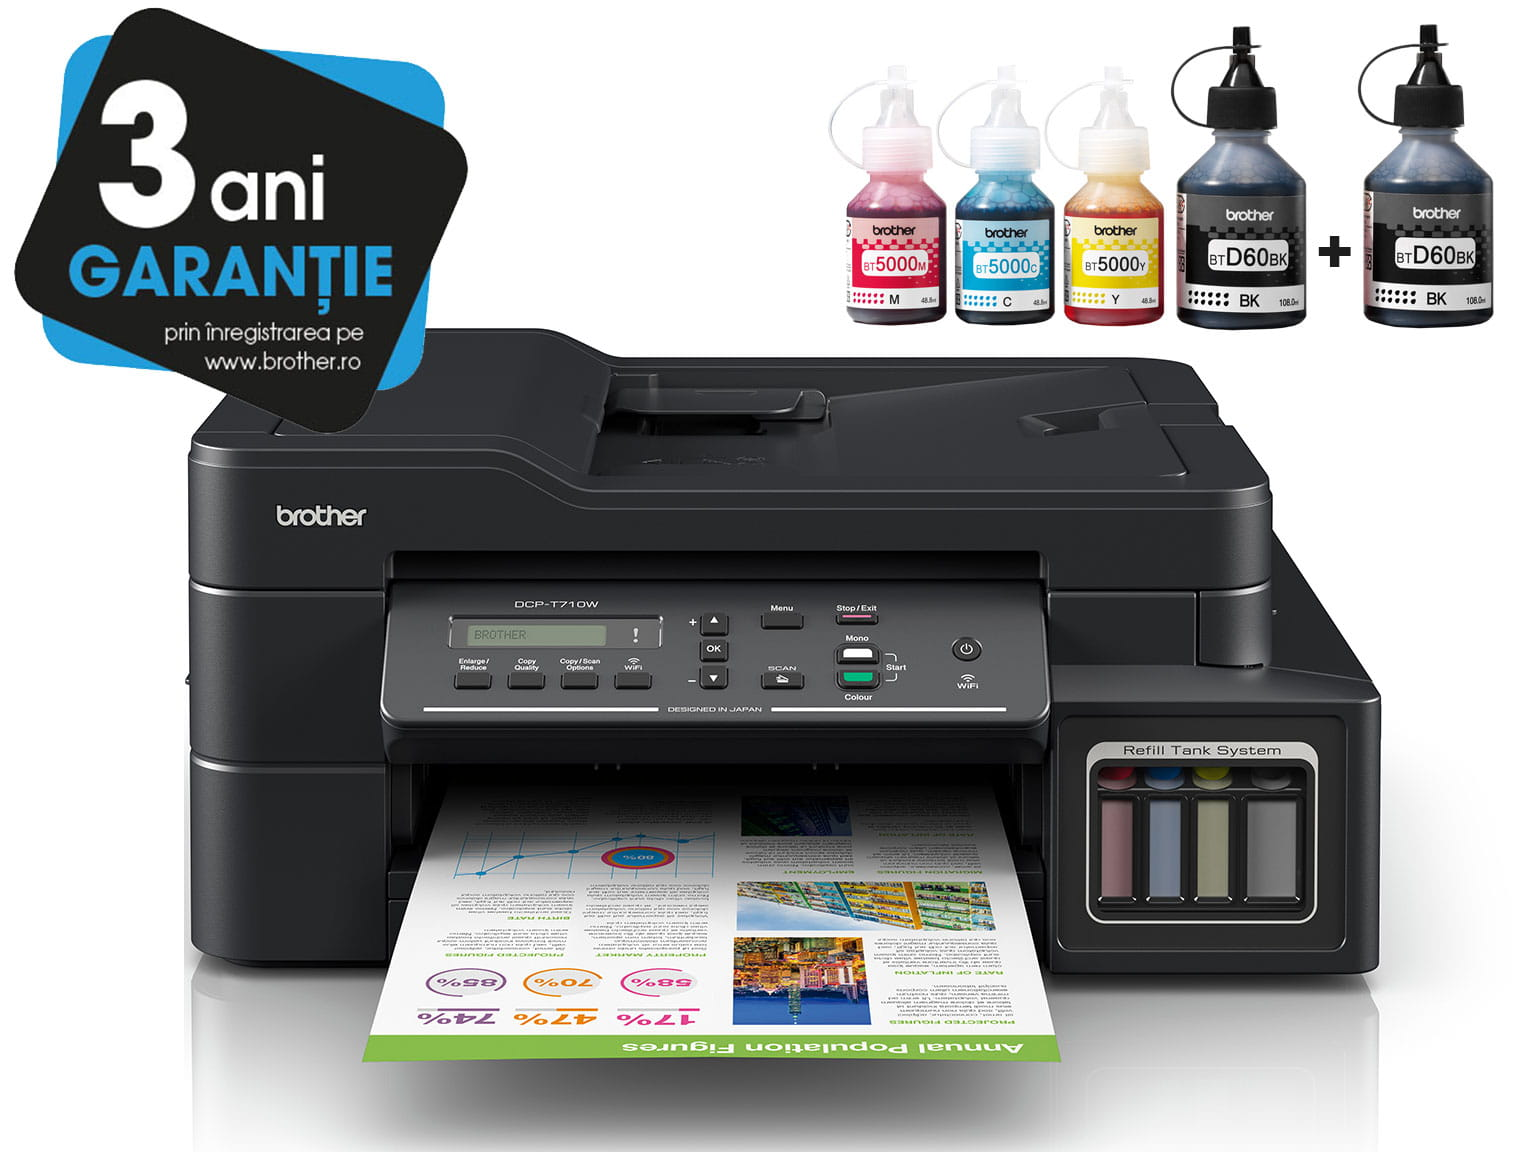 Brother InkBenefit Plus inkjet printer DCP-T710W with 3YW logotype and ink bottles